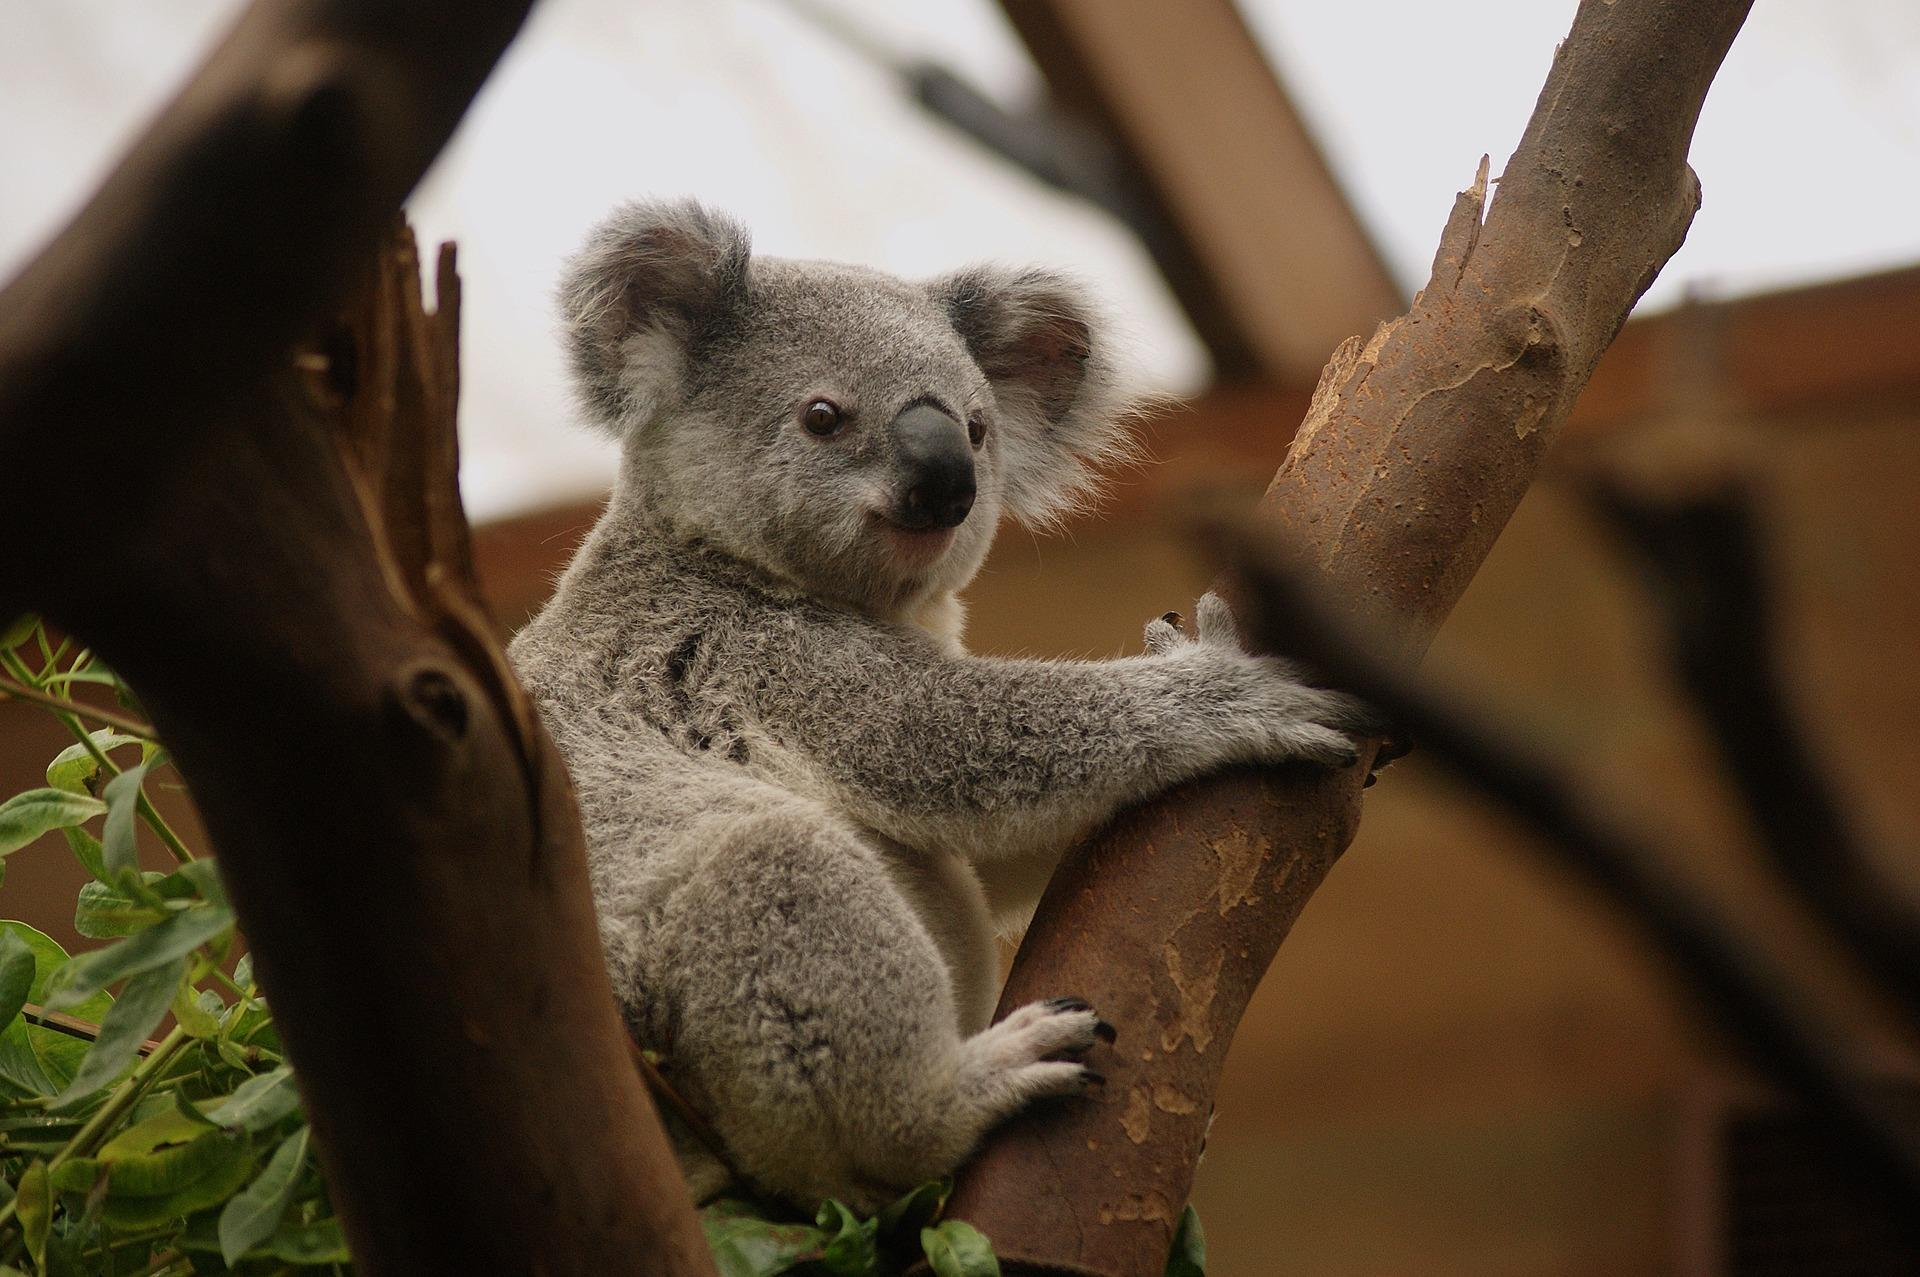 Koala Wallpaper Hd For Android Apk Download